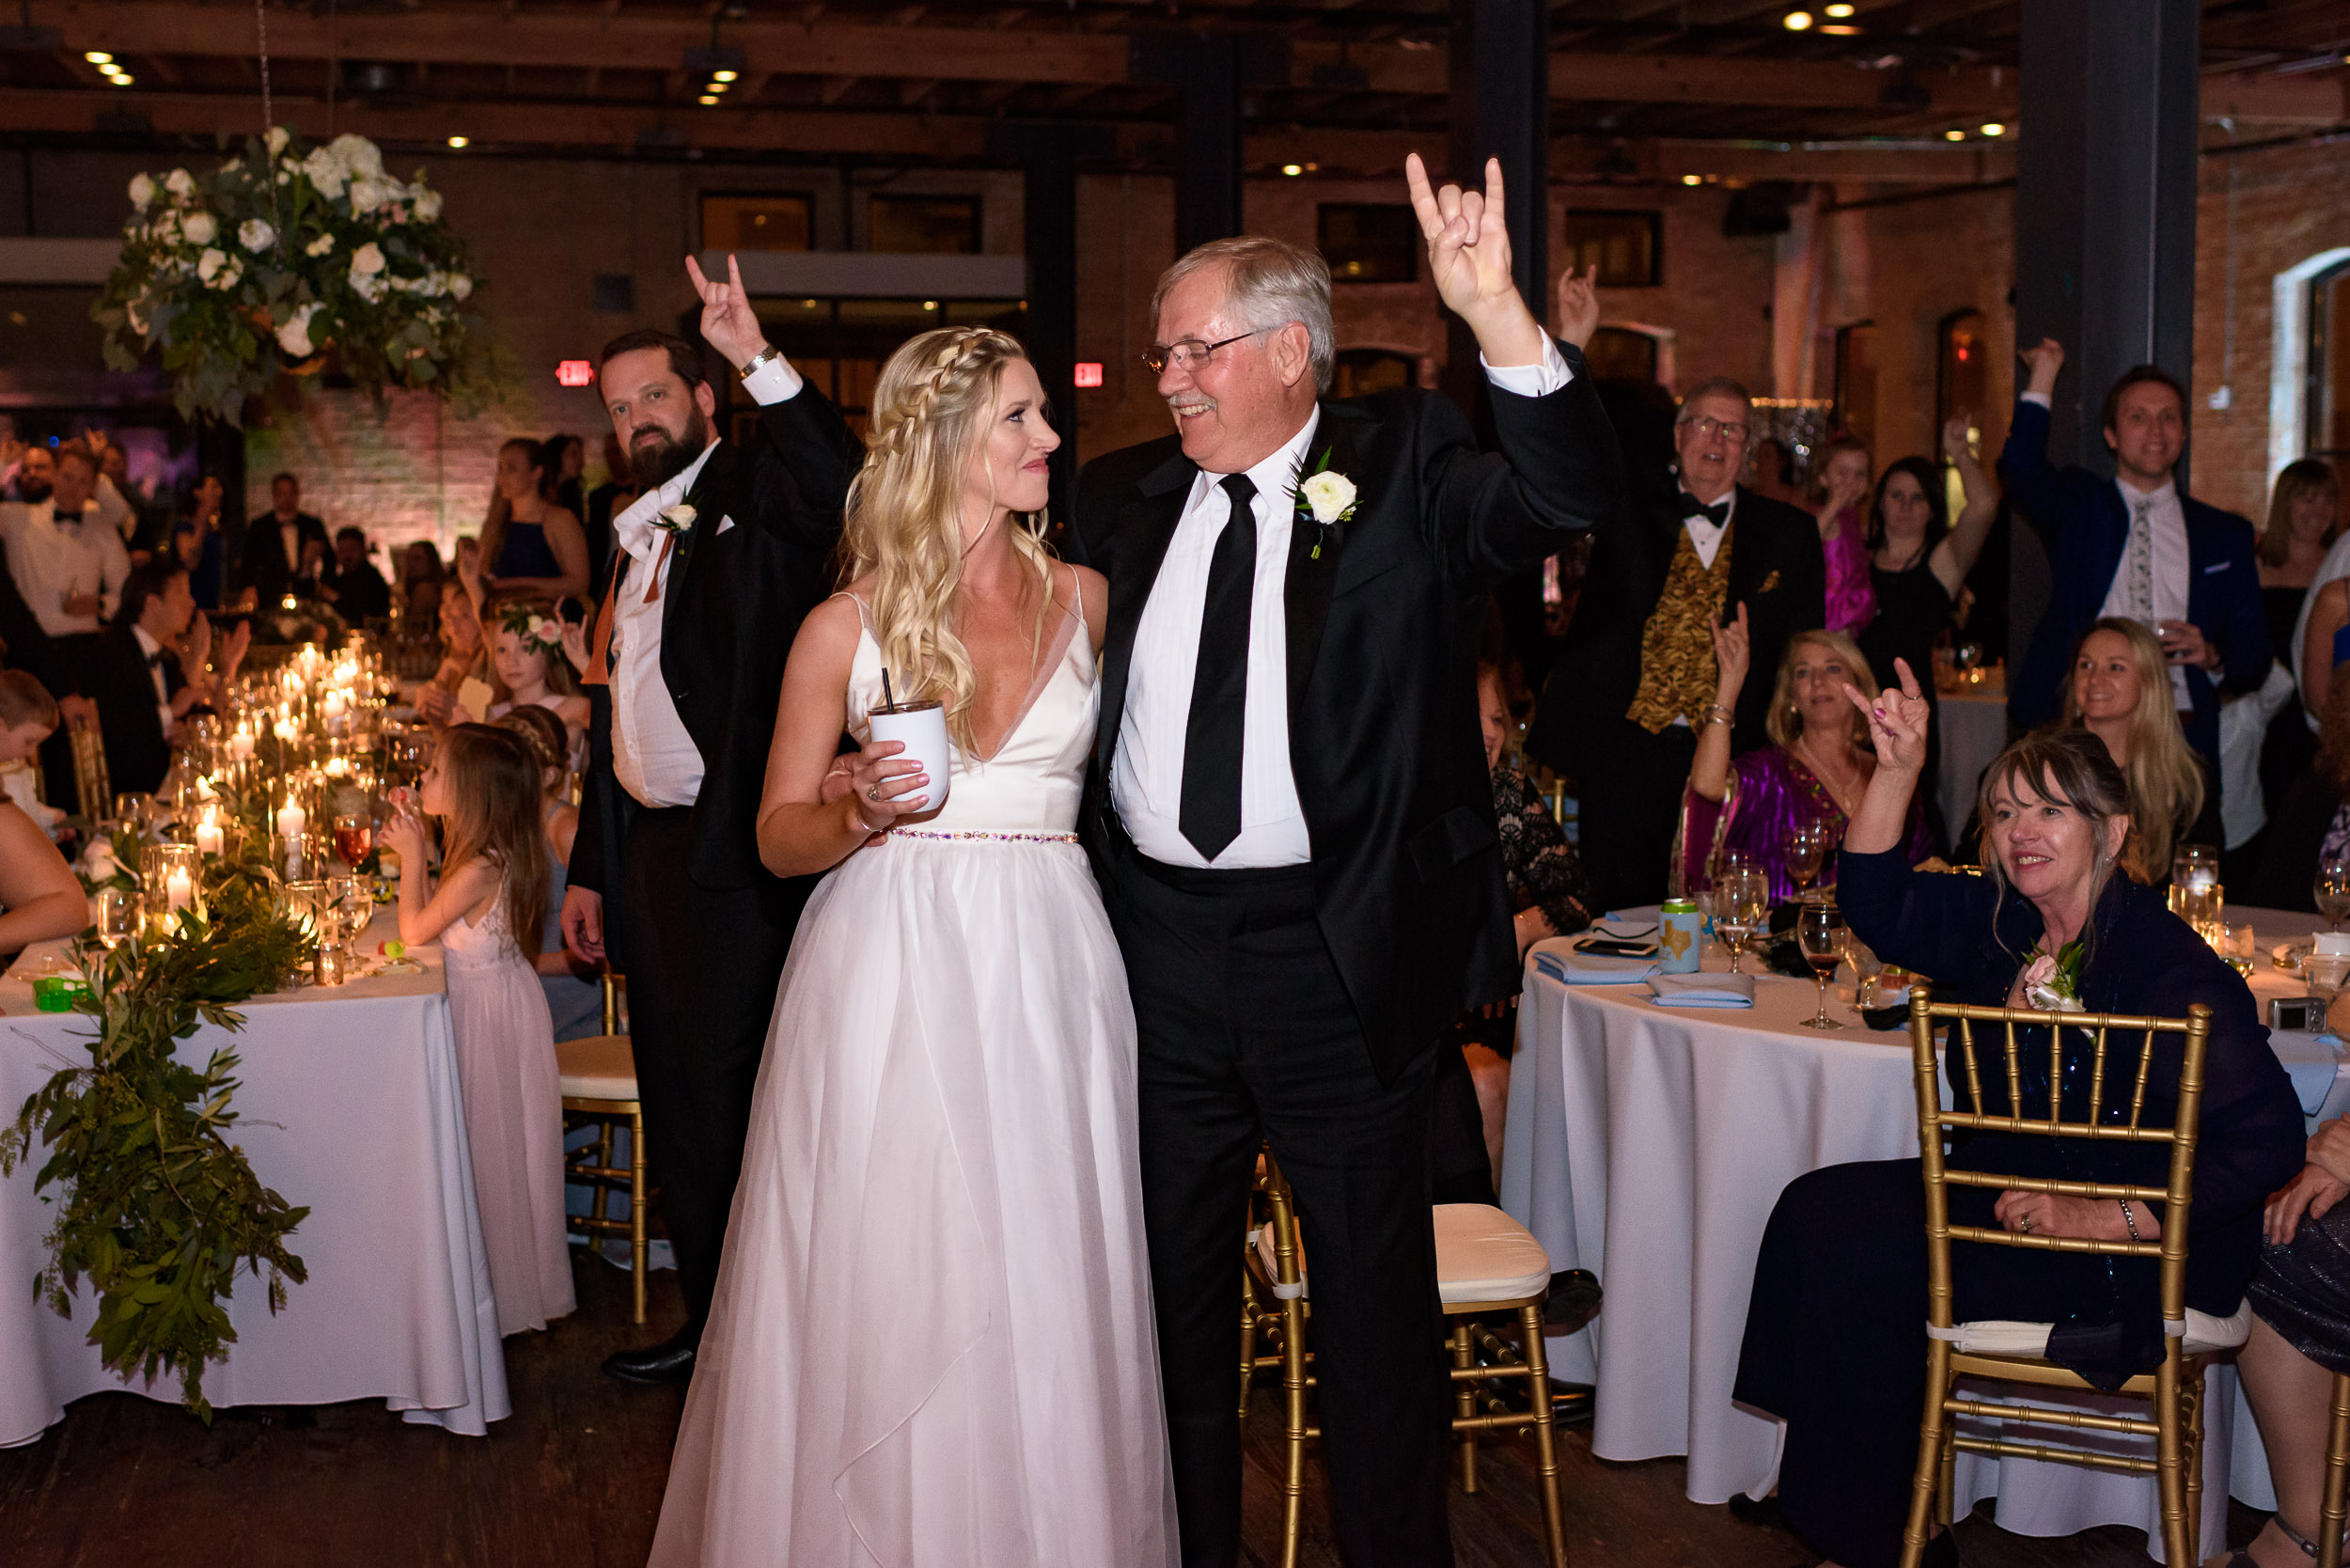 longhorn-chant-UT-texas-bride-dad-Austin-wedding-photographers-brazos-hall-downtown